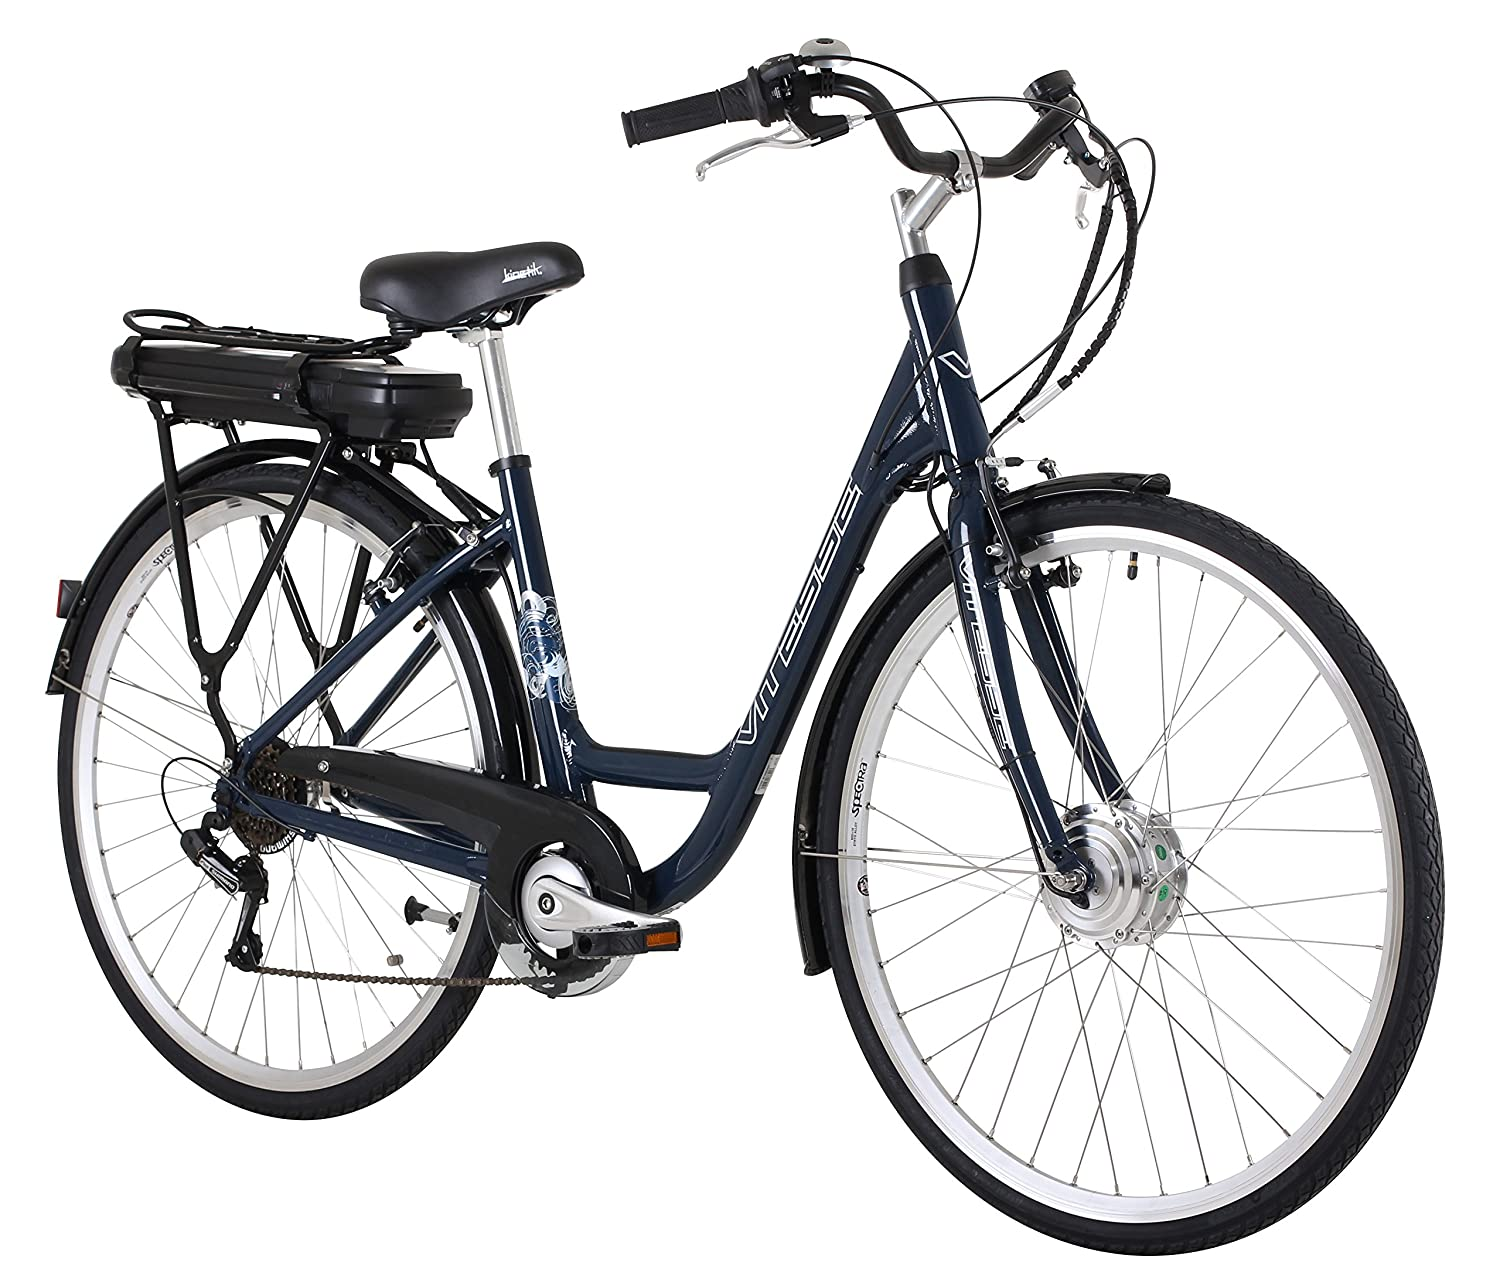 1a03ff6e71f Vitesse Unisex Shimano 6-Speed Electric Bike, Midnight Blue, 18-inch frame:  Amazon.co.uk: Sports & Outdoors